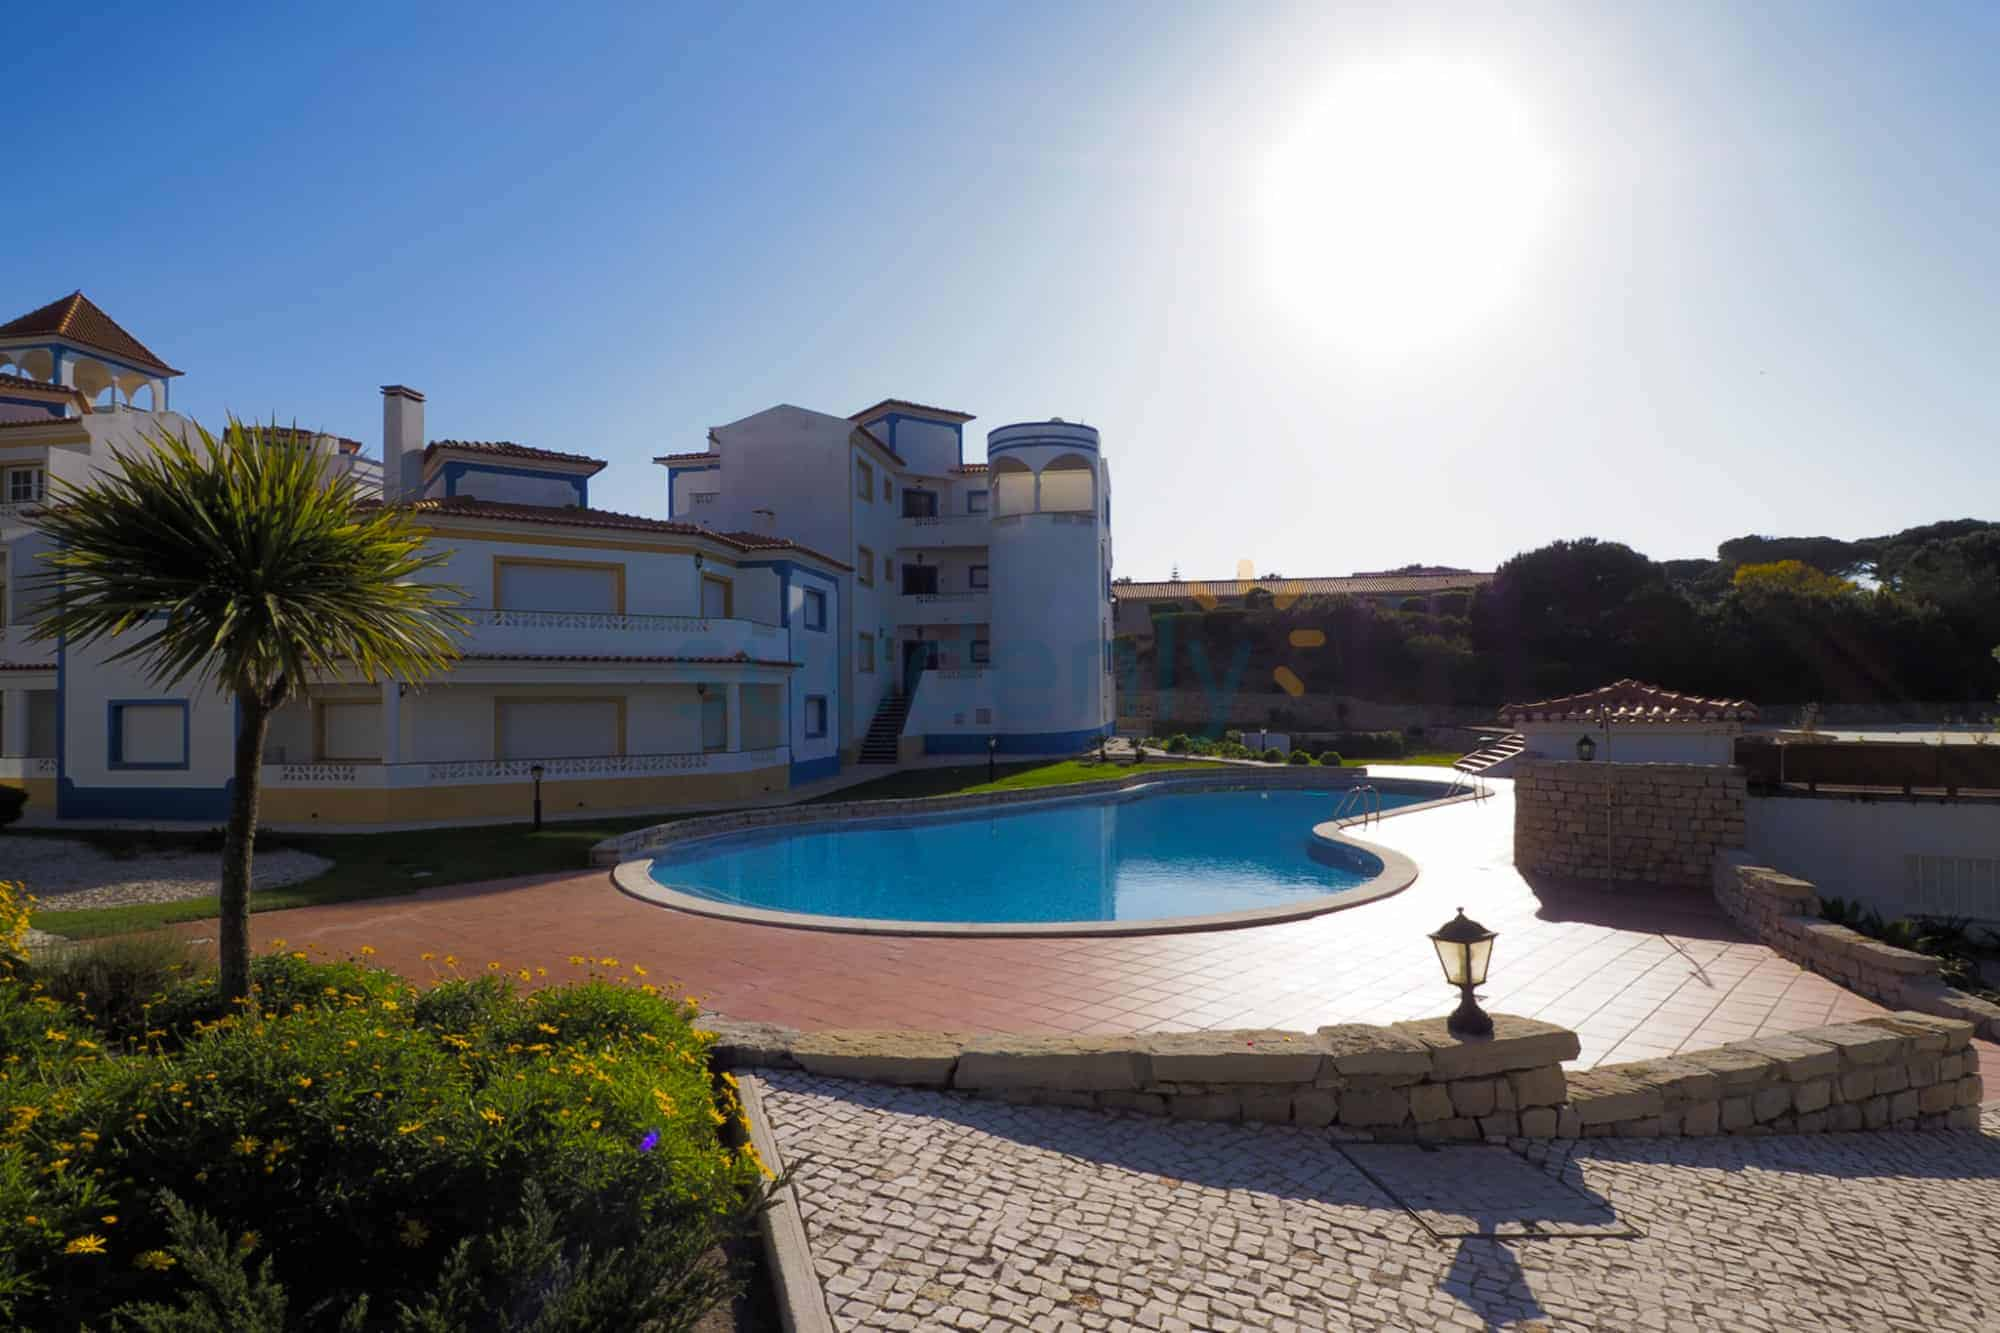 Holiday Rentals in Praia D'El Rey 150